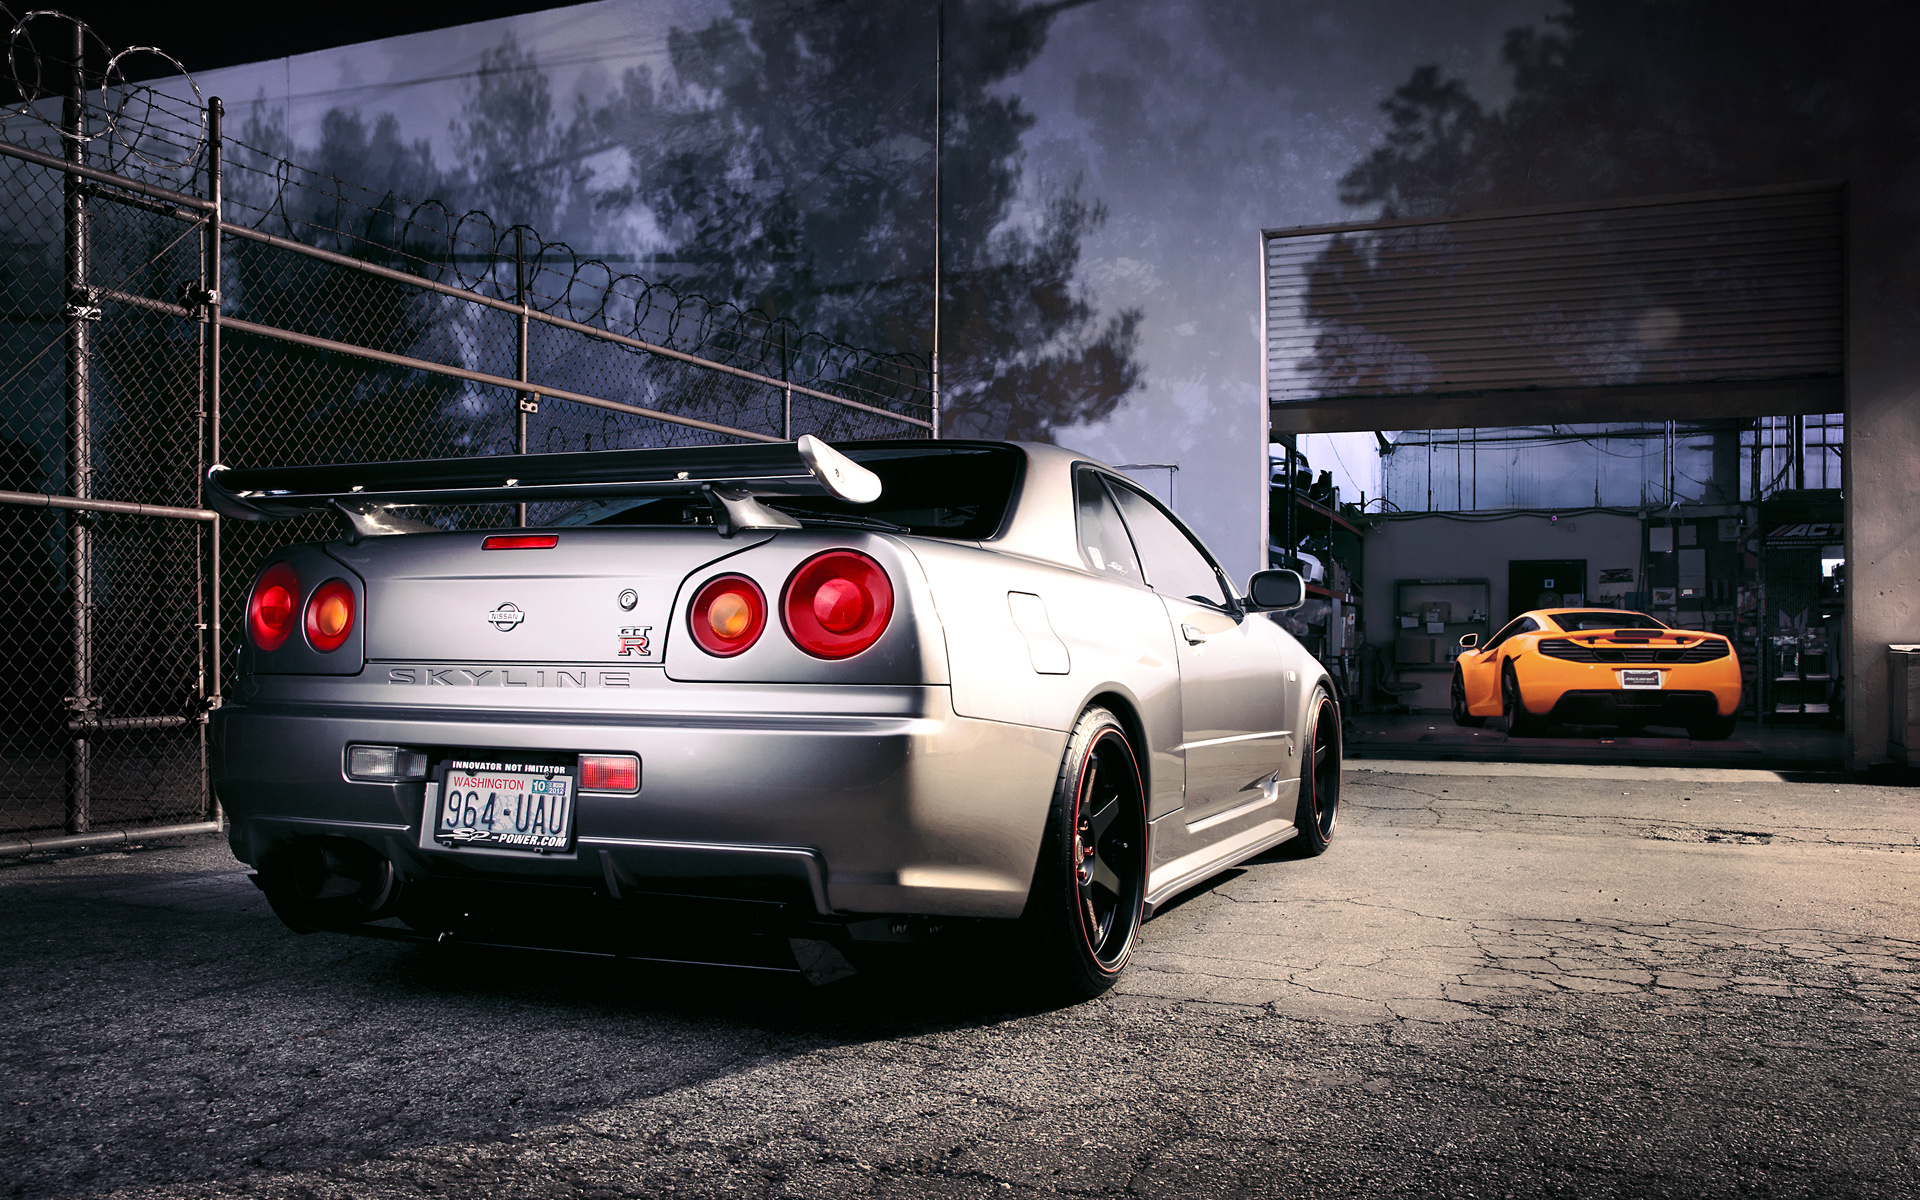 Nissan R34 Skyline Gt R Wallpaper Hd Car Wallpapers Id 3059